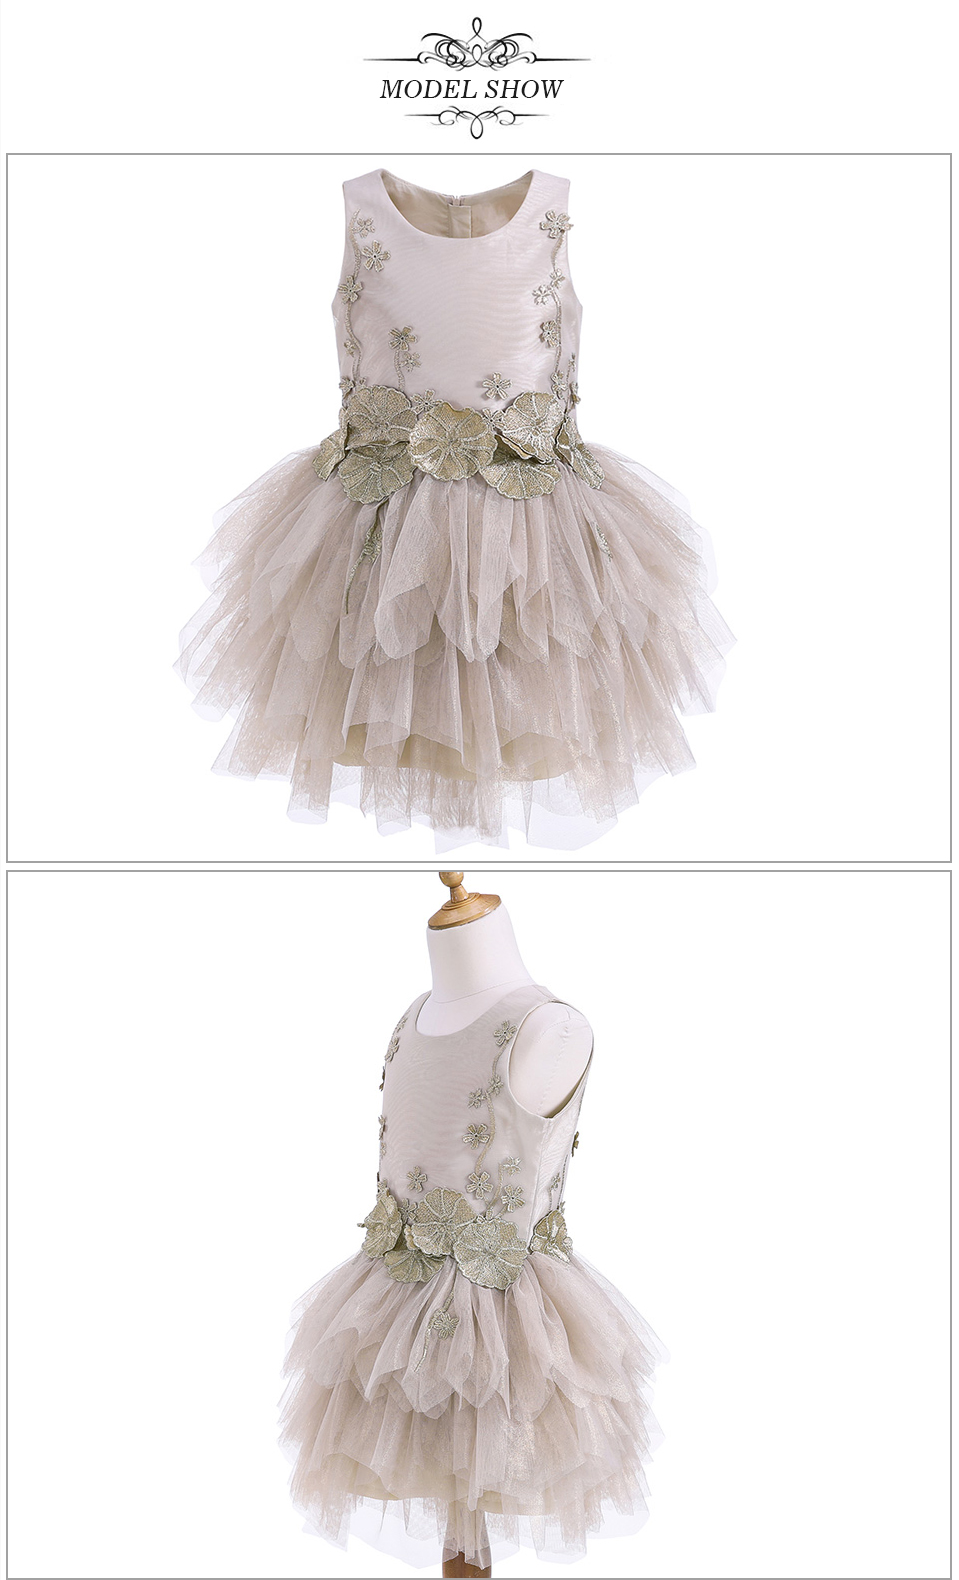 Fashion Classical Ballet Tutu Dress Knee-Length Applique Sleeveless Baby Girl Party Dress